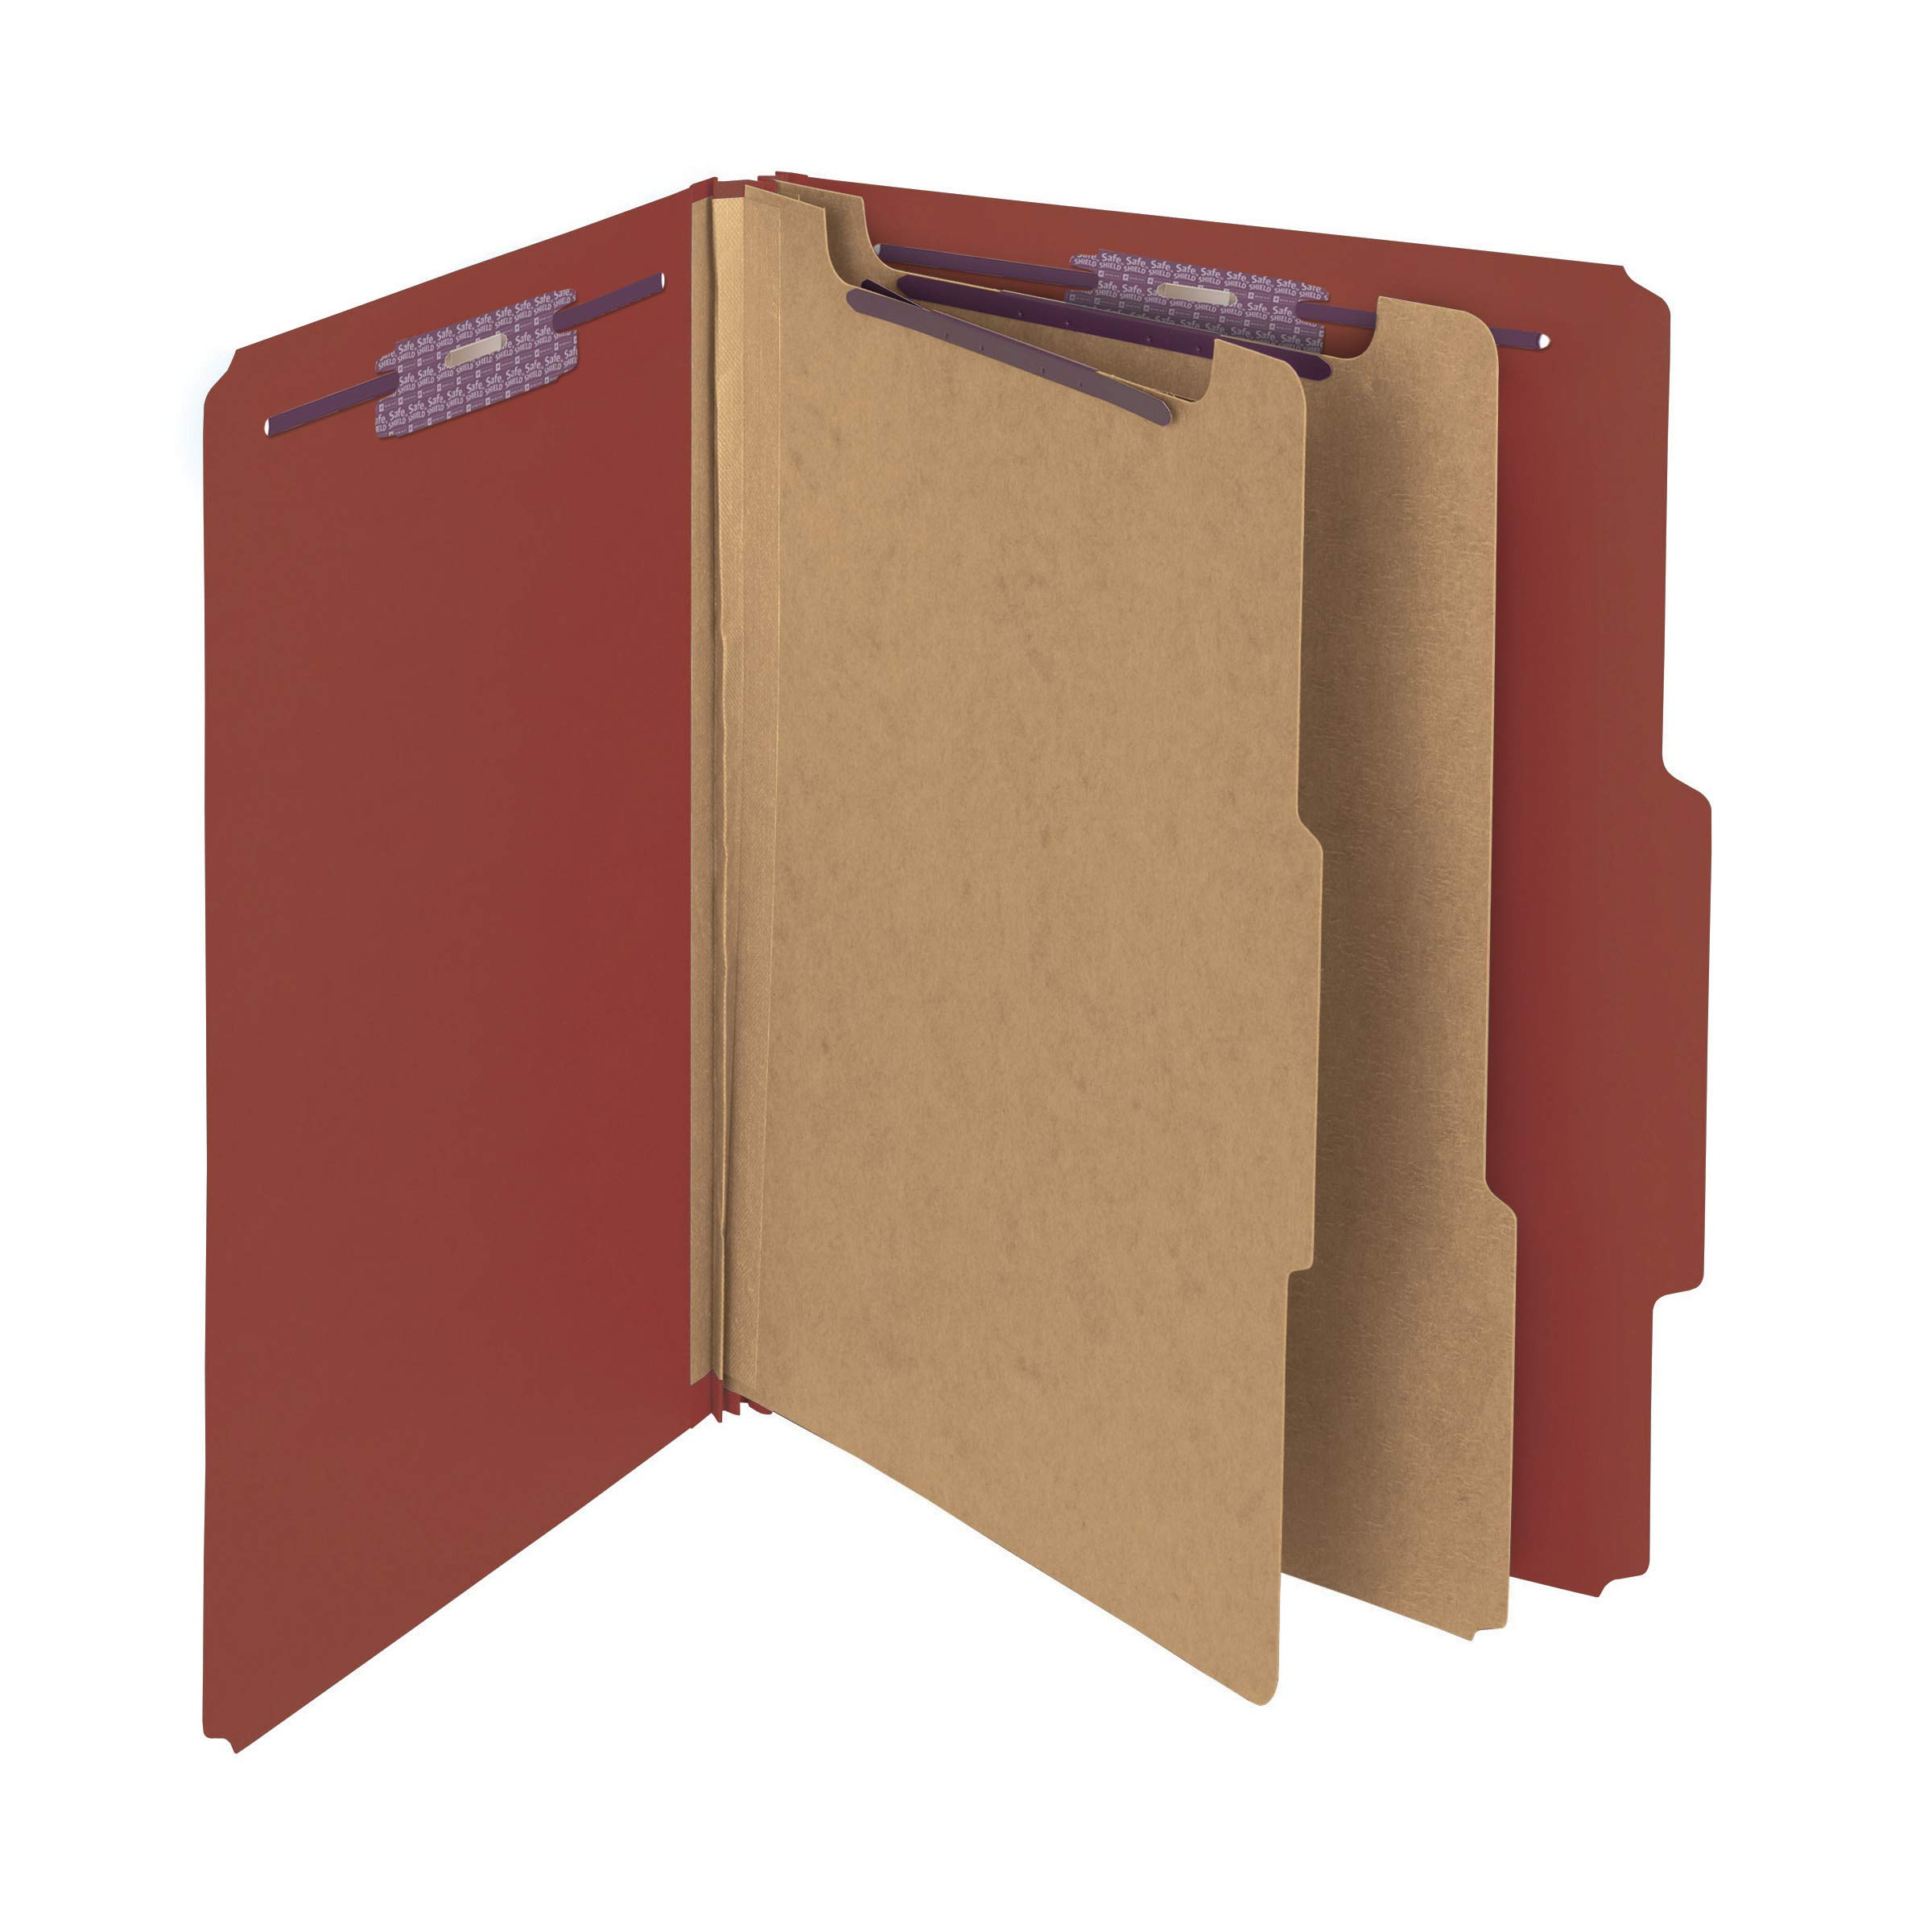 Smead Pressboard Classification File Folder with SafeSHIELD Fasteners, 2 Dividers, 2'' Expansion, Letter Size, Red, 10 per Box (14075) by Smead